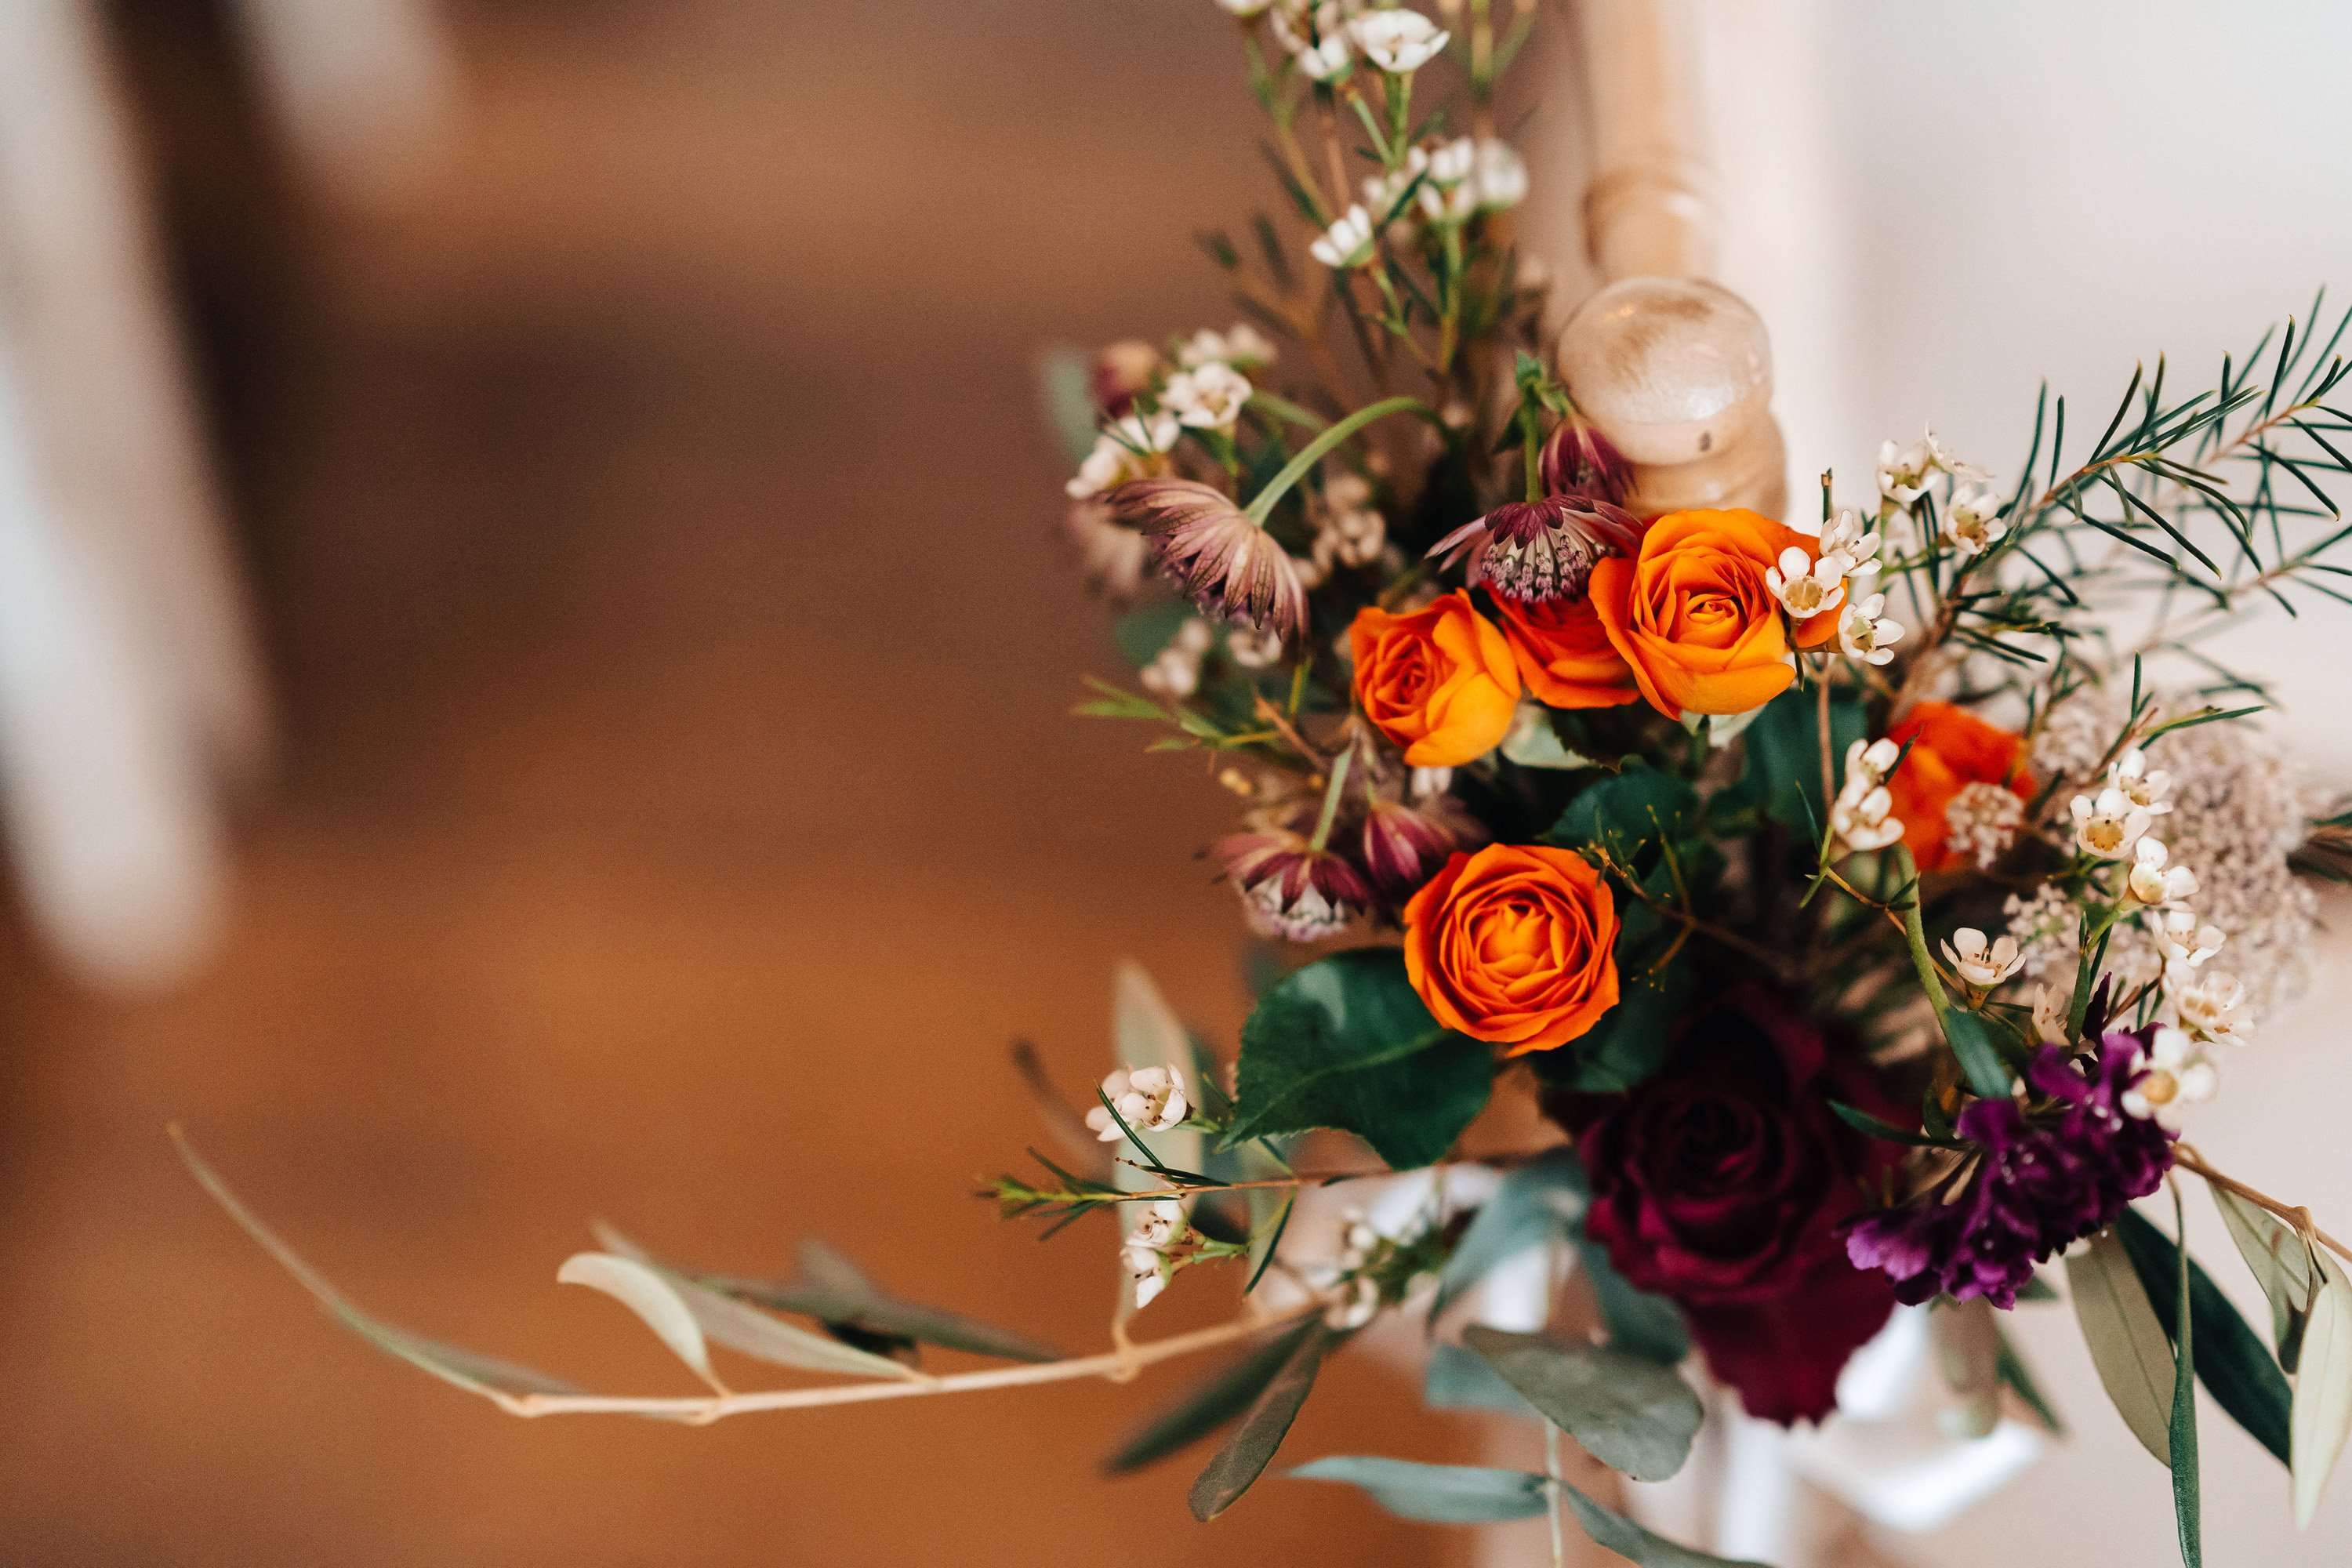 Autumn wedding bouquet with orange roses